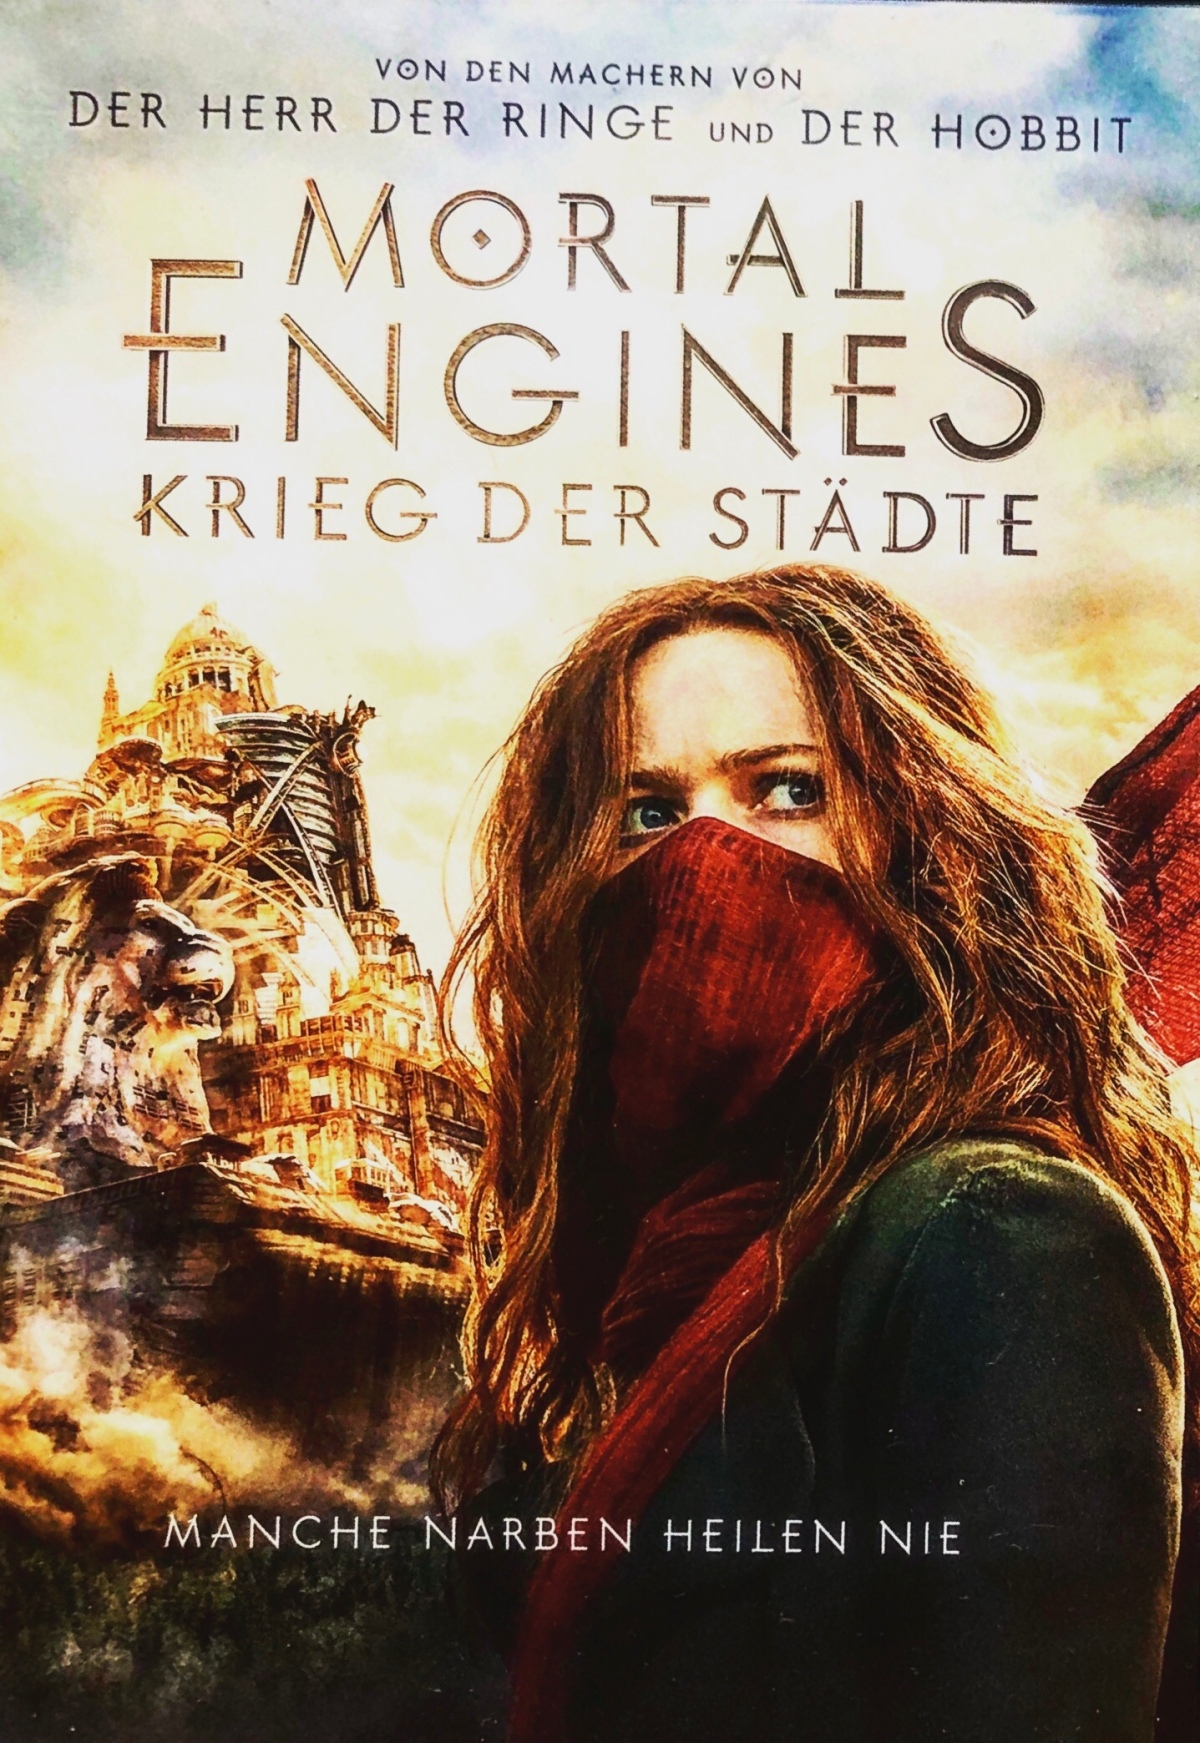 Mortal Engines |Review